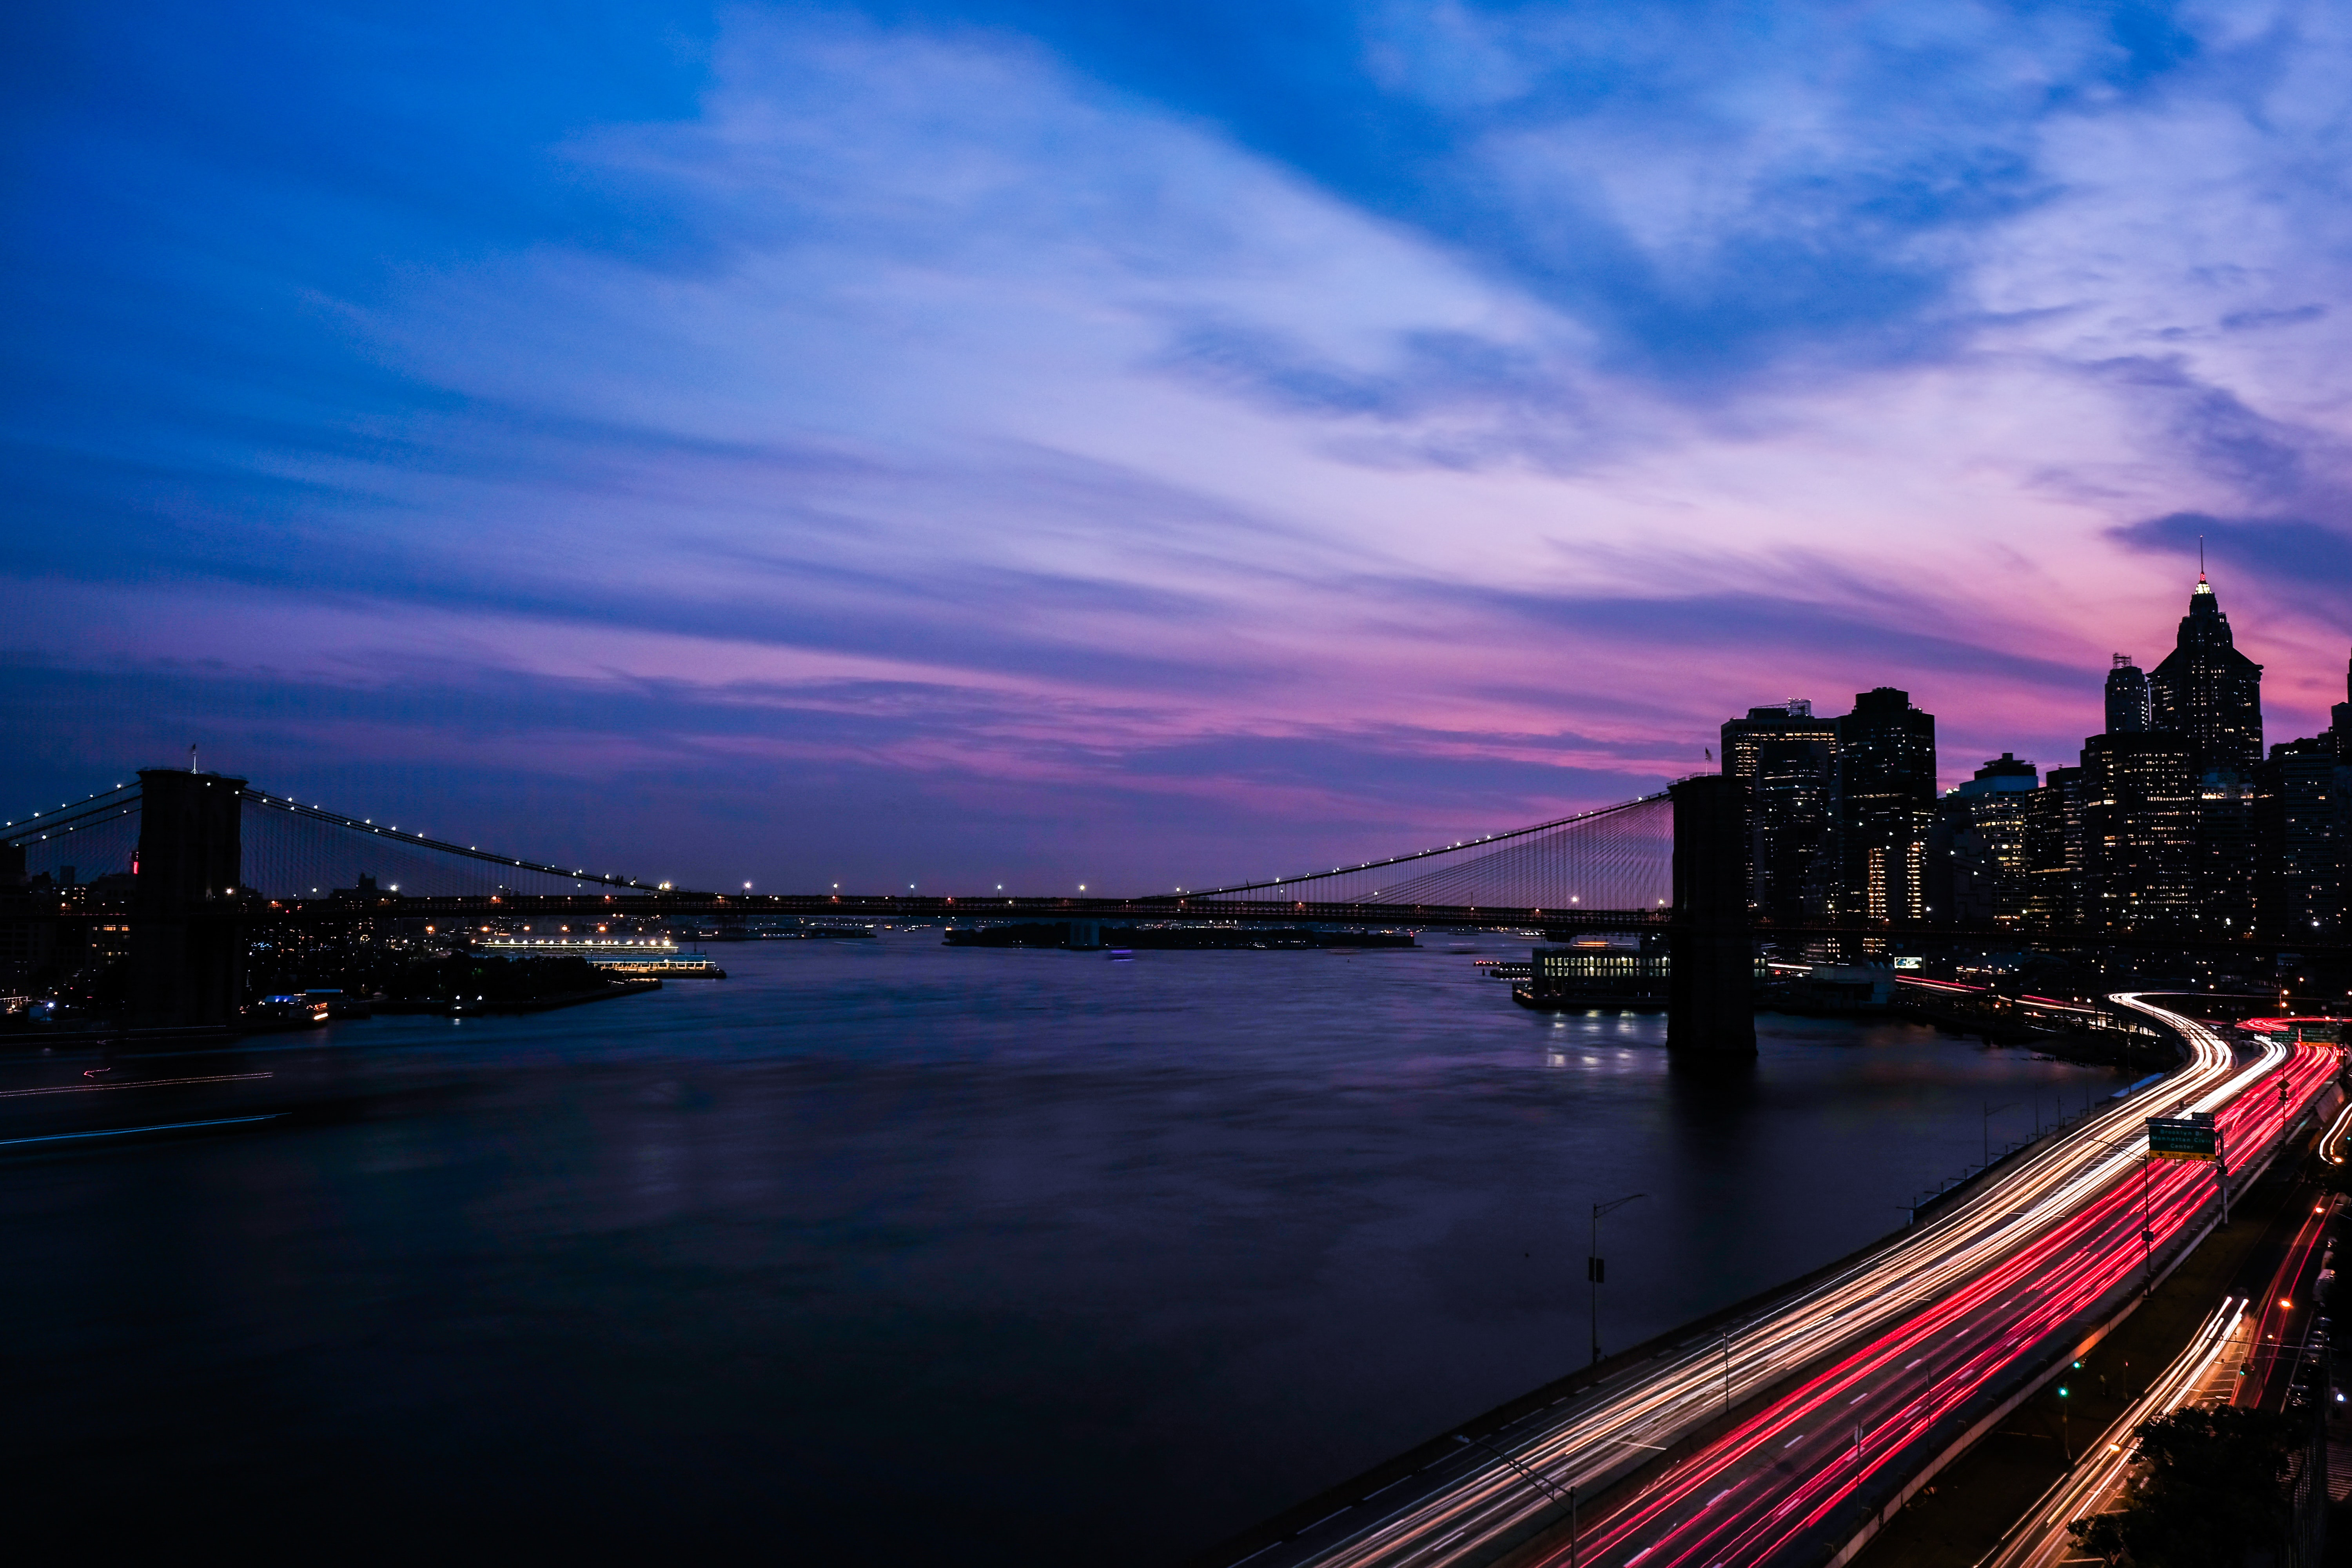 timelapse photography of road and bridge